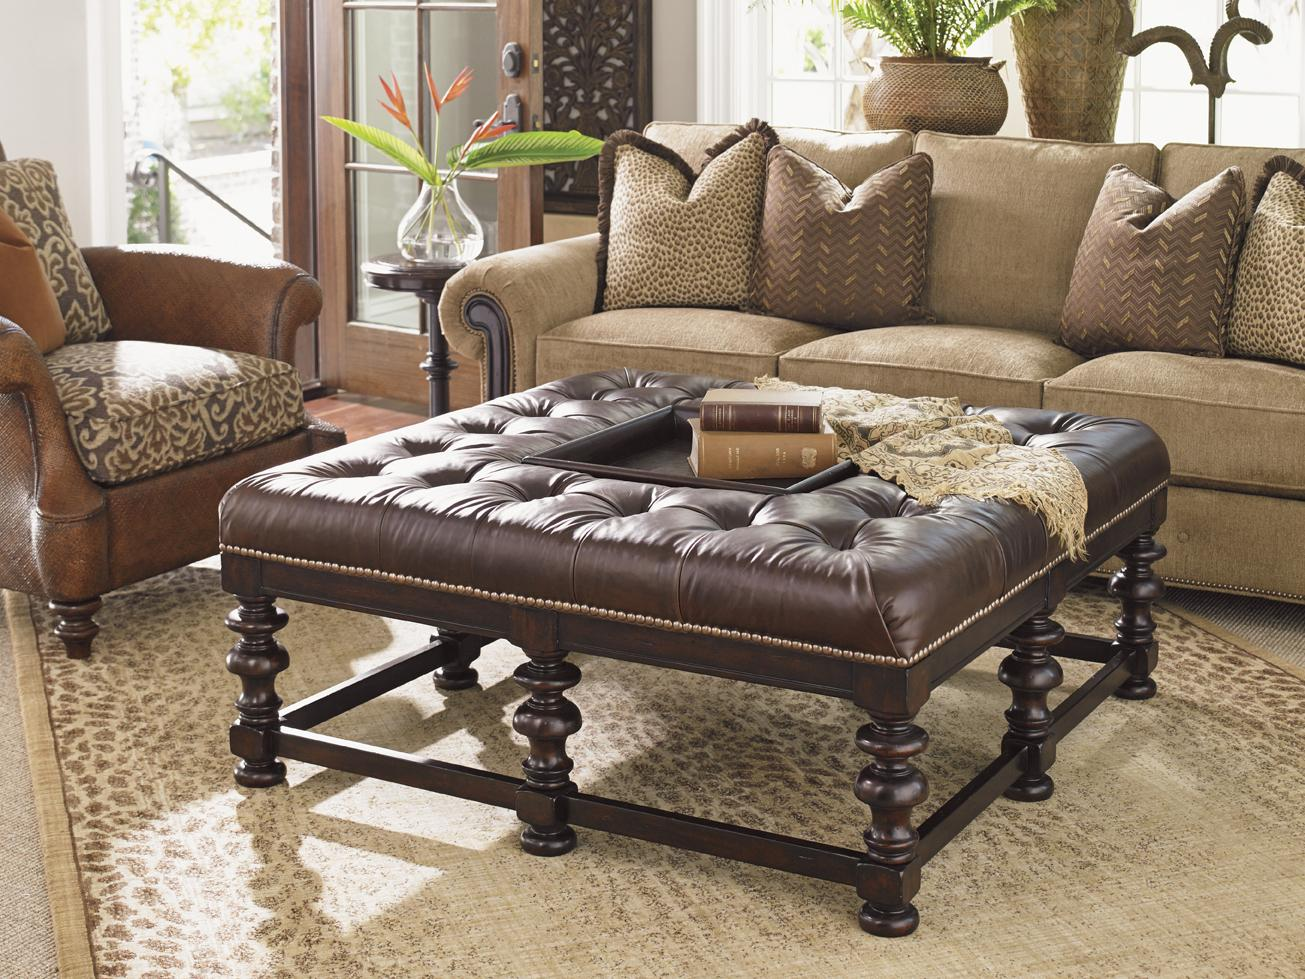 Ottomon Coffee Table Images